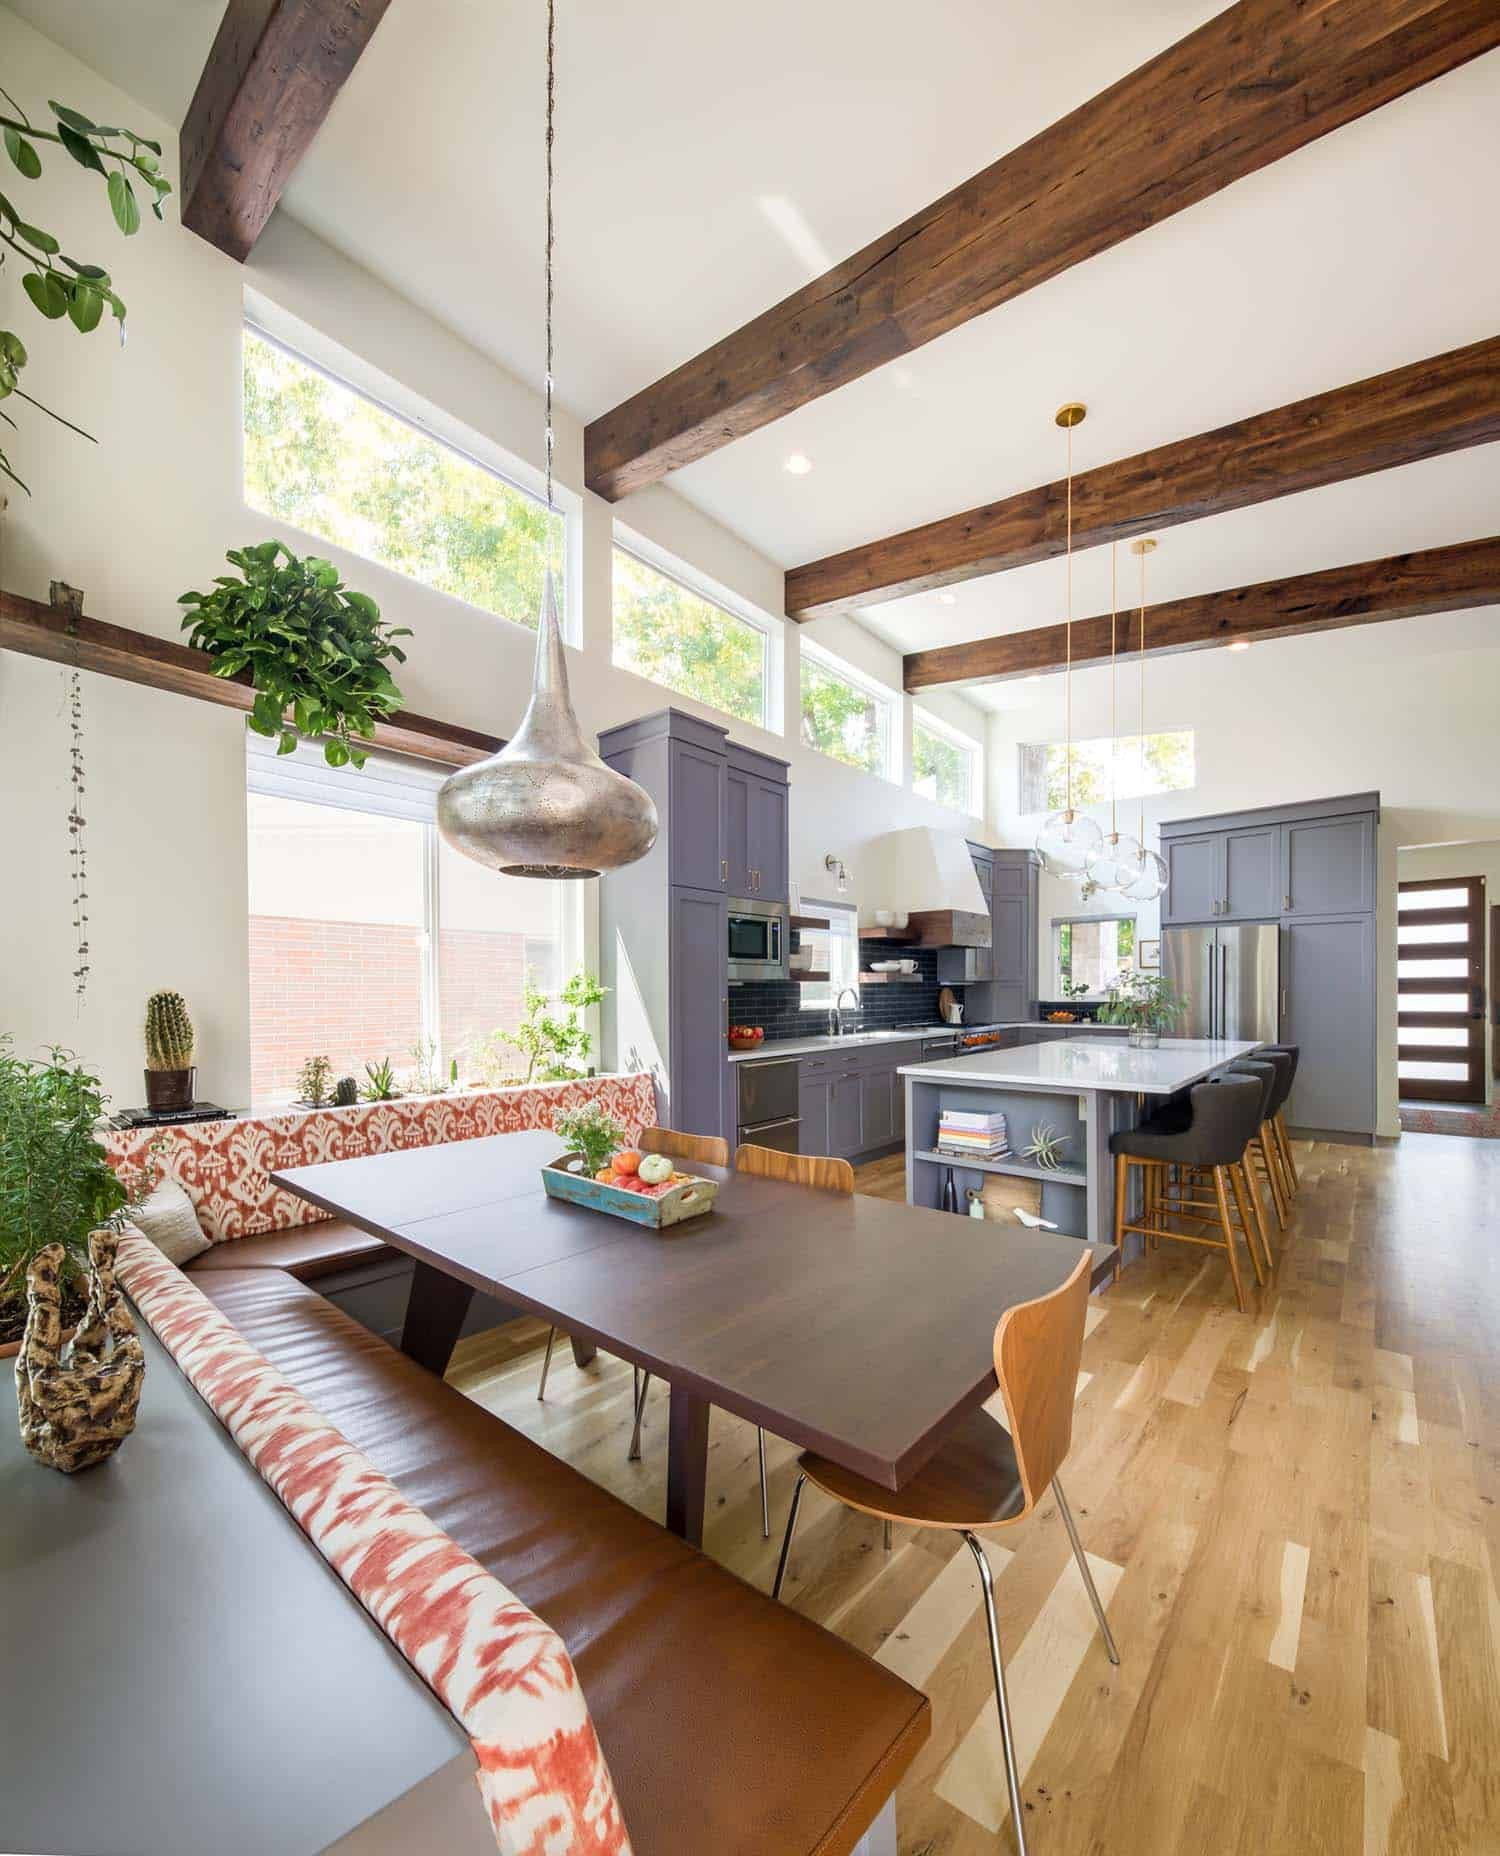 Bright And Airy Renovation Of A 1950s Ranch House In